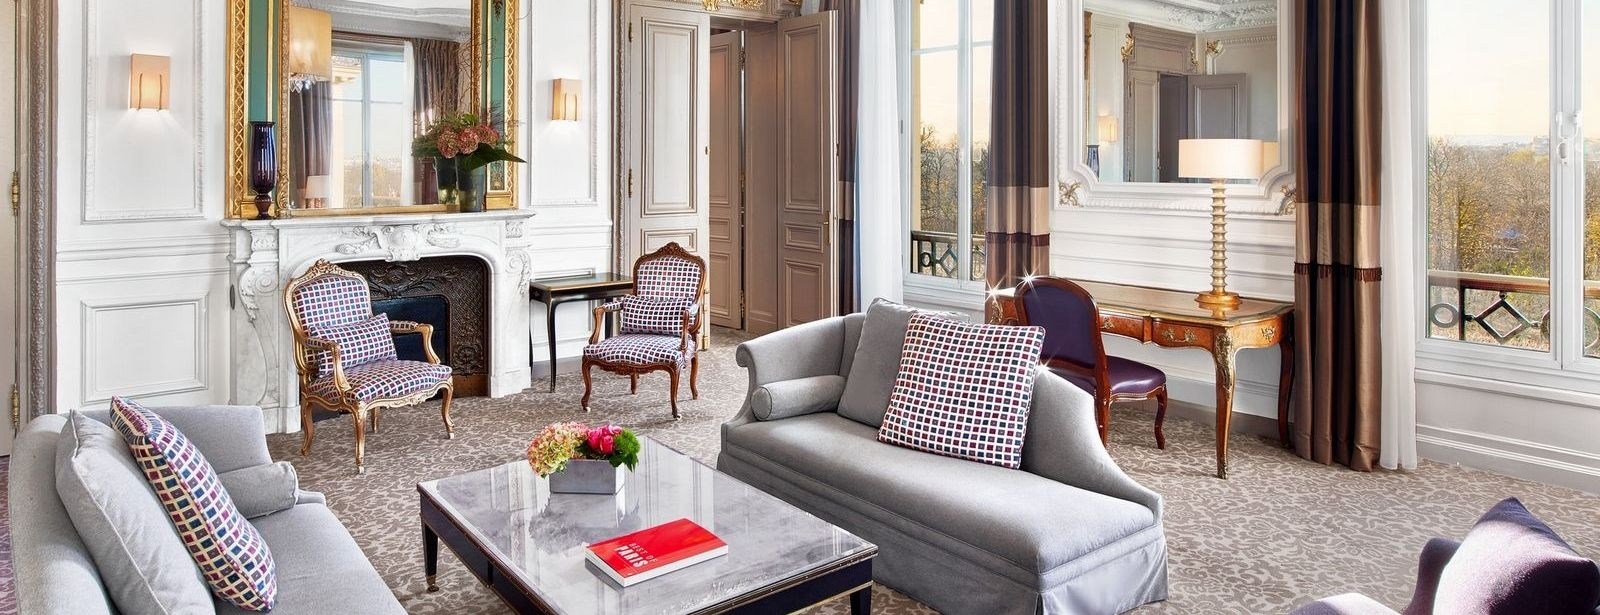 Presidential Suite in The Westin Paris - Vendôme